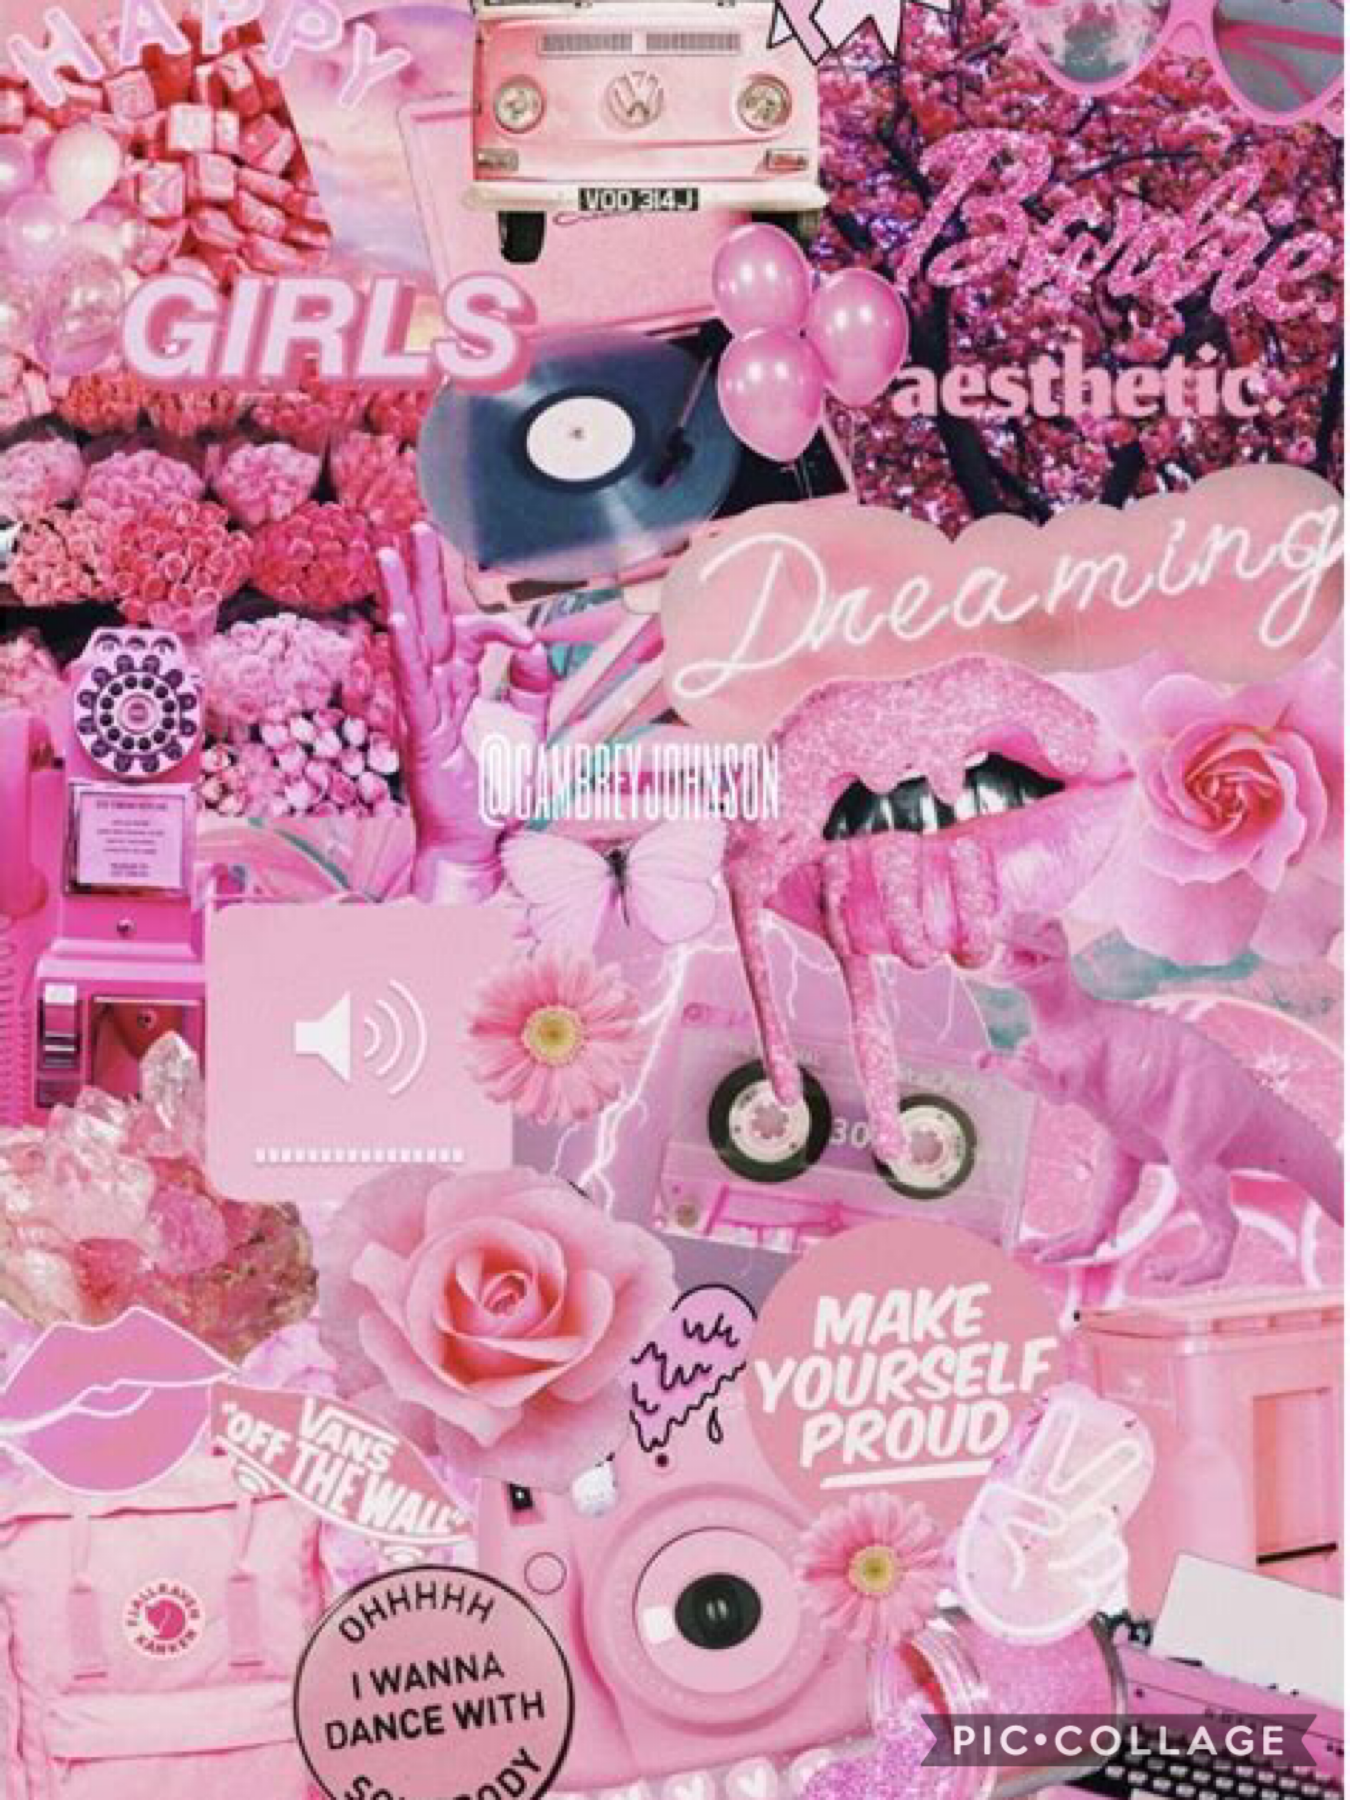 P I N K 👄👅🧠👩🏻🎤💅🏼👚👛🐽🐷 recommend colours!